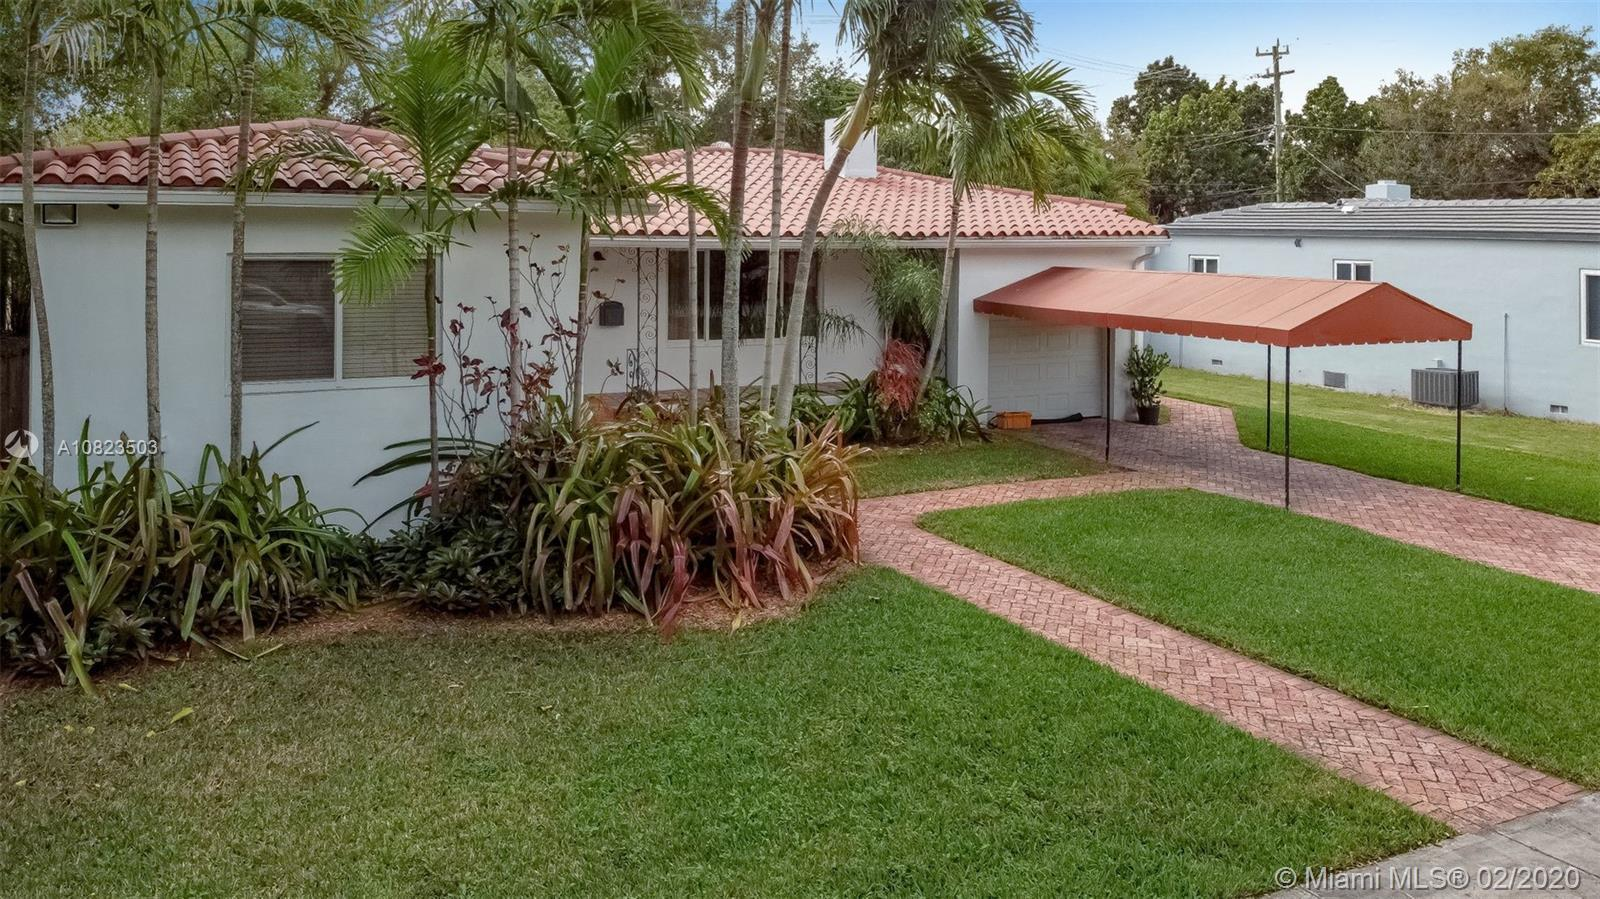 Turnkey elegant 3 bedrooms, 2 bathrooms with plenty of details.  1925 sq. ft. living space.  Fenced